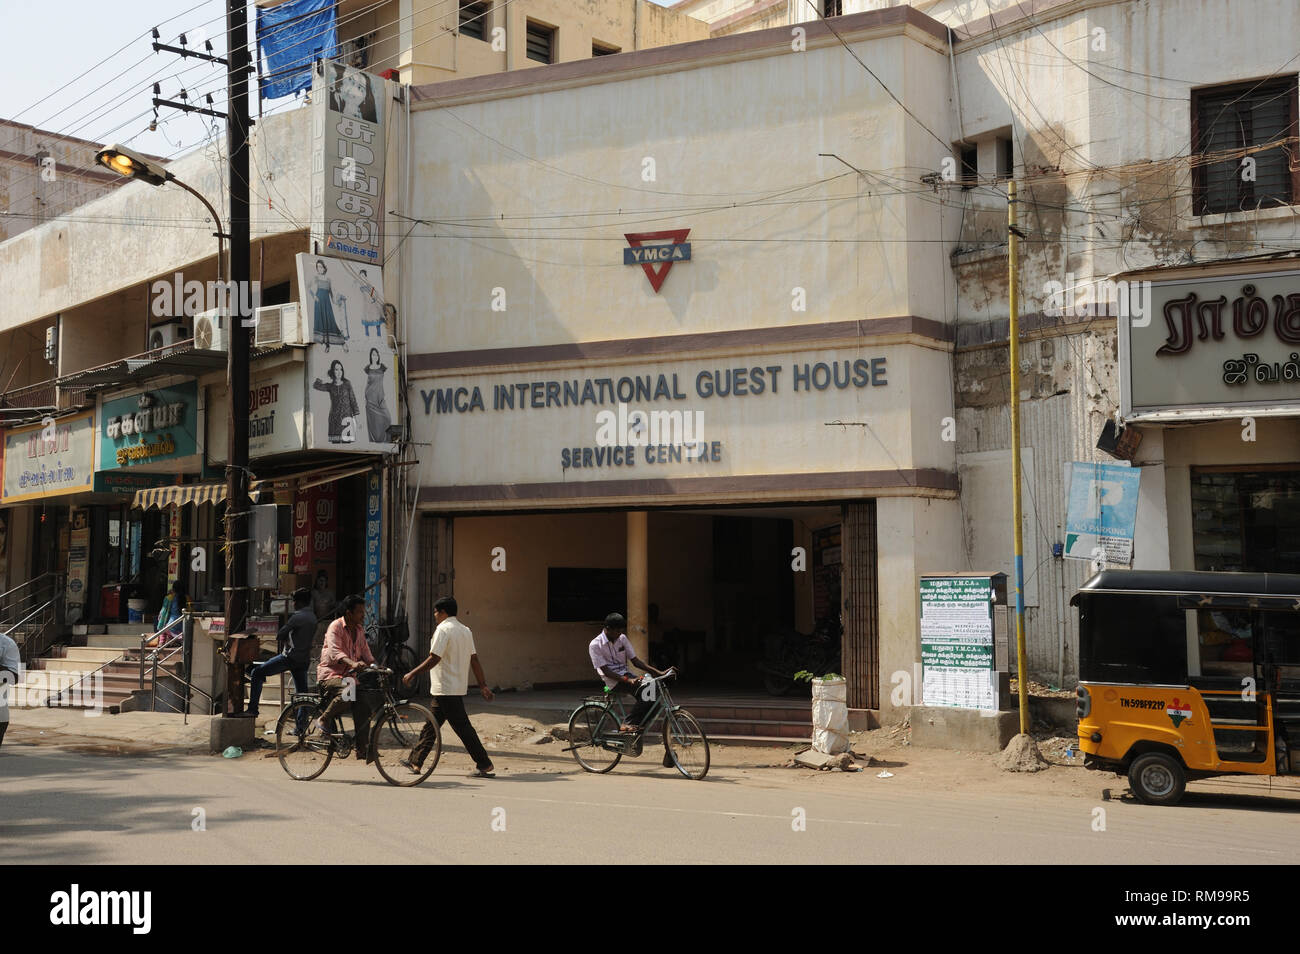 YMCA International Guest House, Madurai, Tamil Nadu, India, Asia - Stock Image